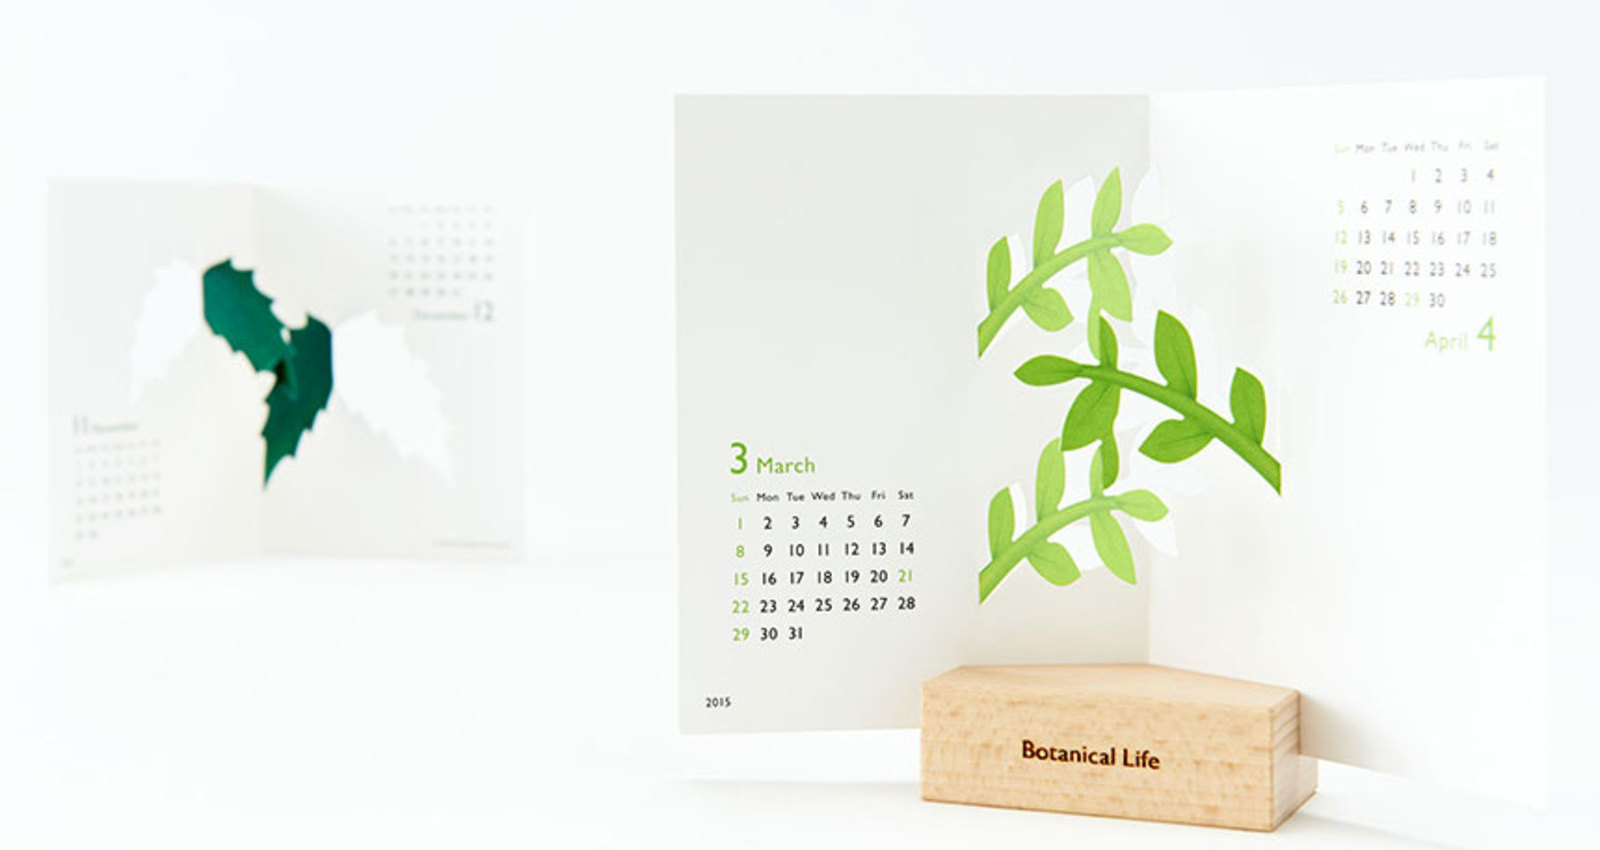 good morning original calendar: Botanical Life